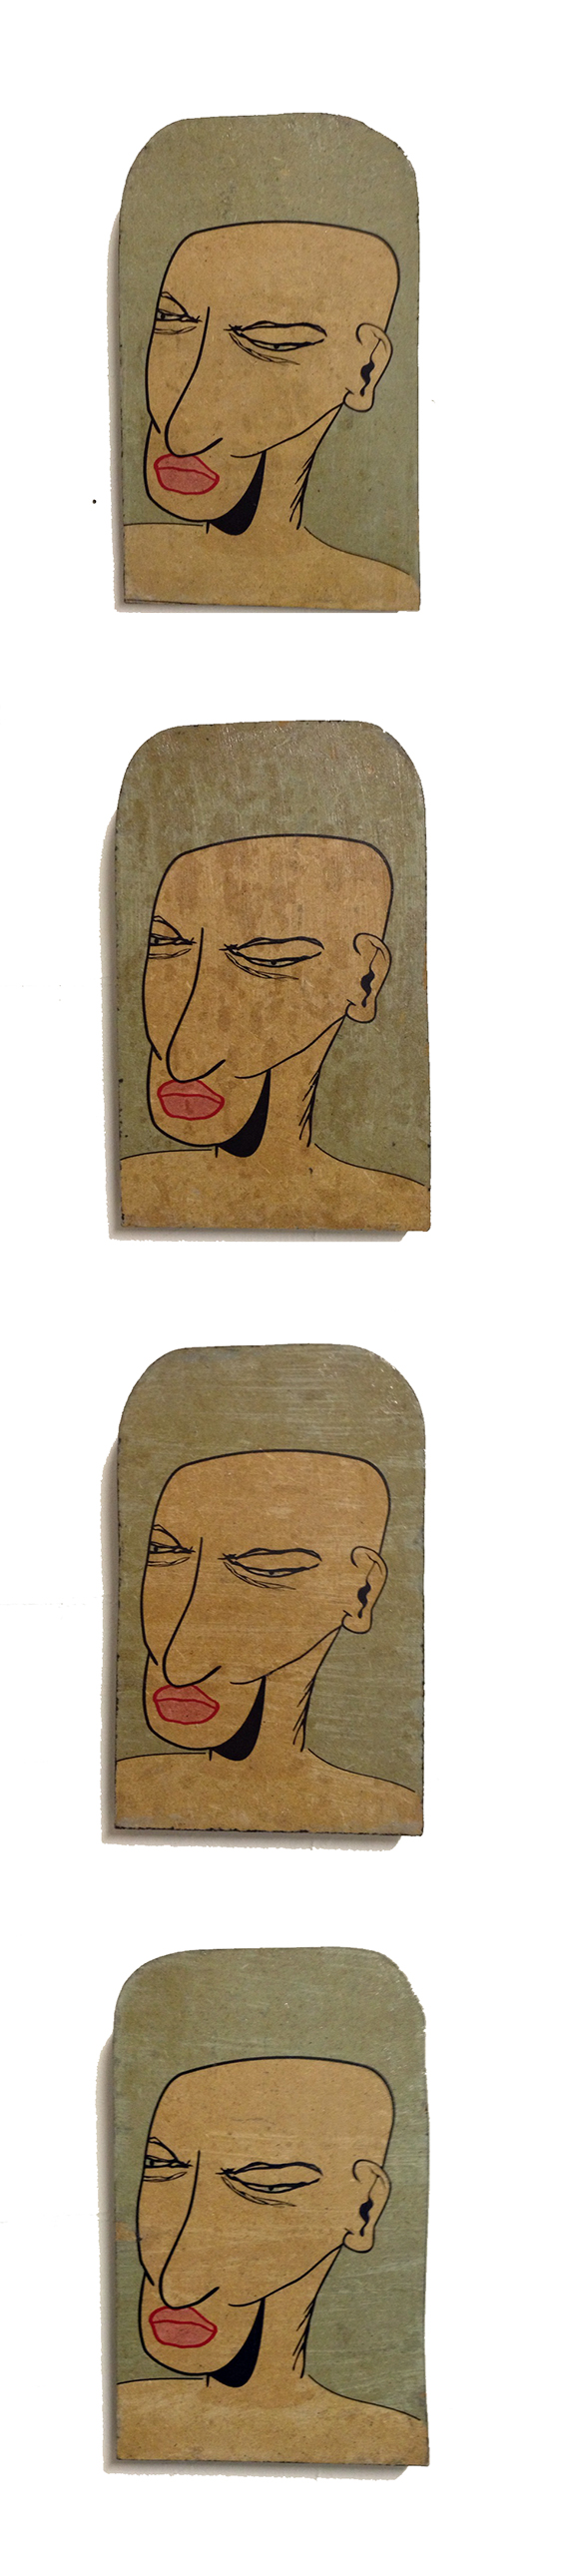 Four Faces on Wood